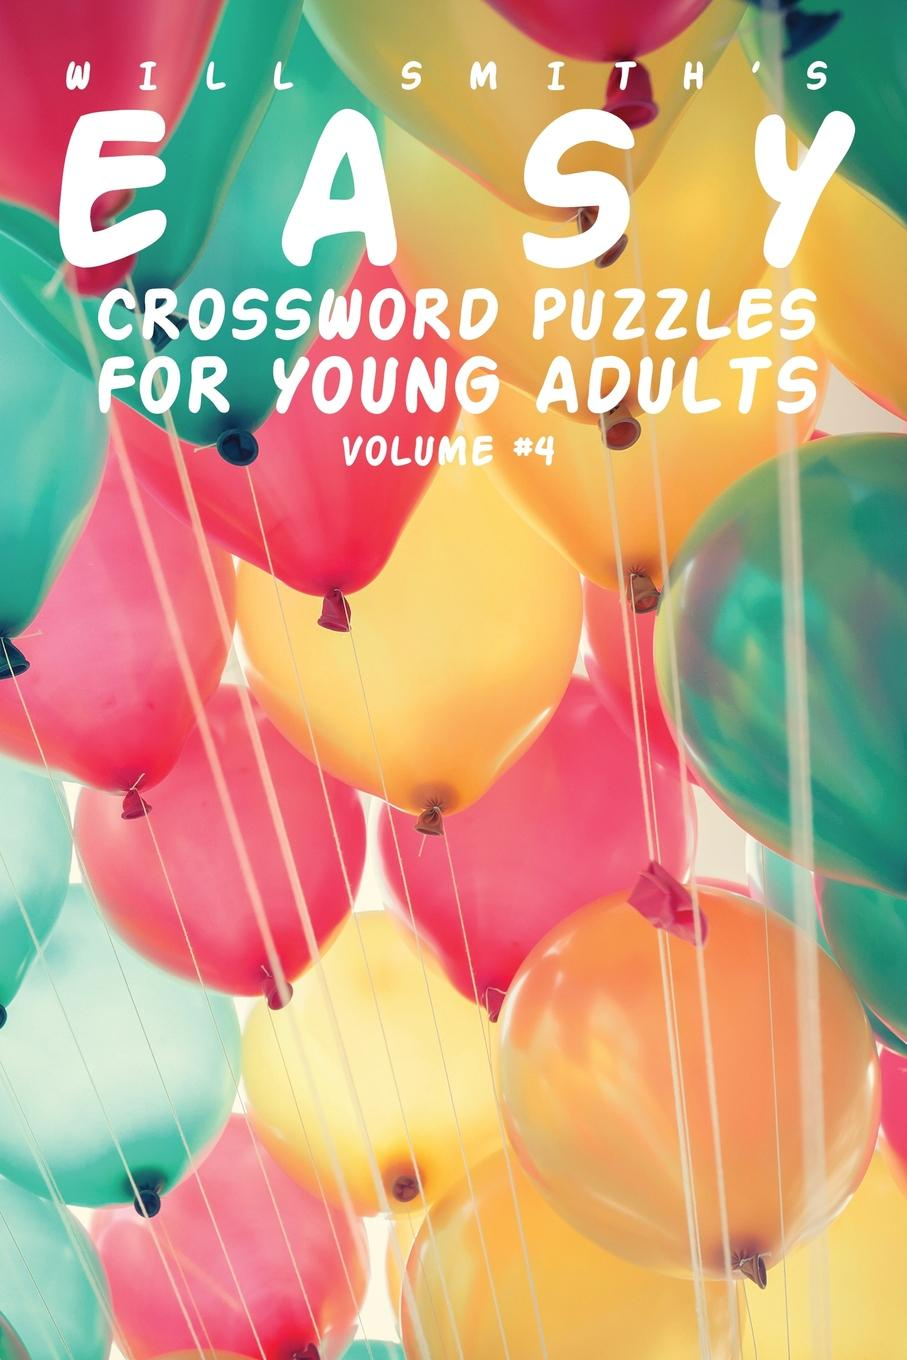 Will Smith Easy Crossword Puzzles For Young Adults - Volume 4 fandom media fun and easy korean vocabulary crossword puzzles